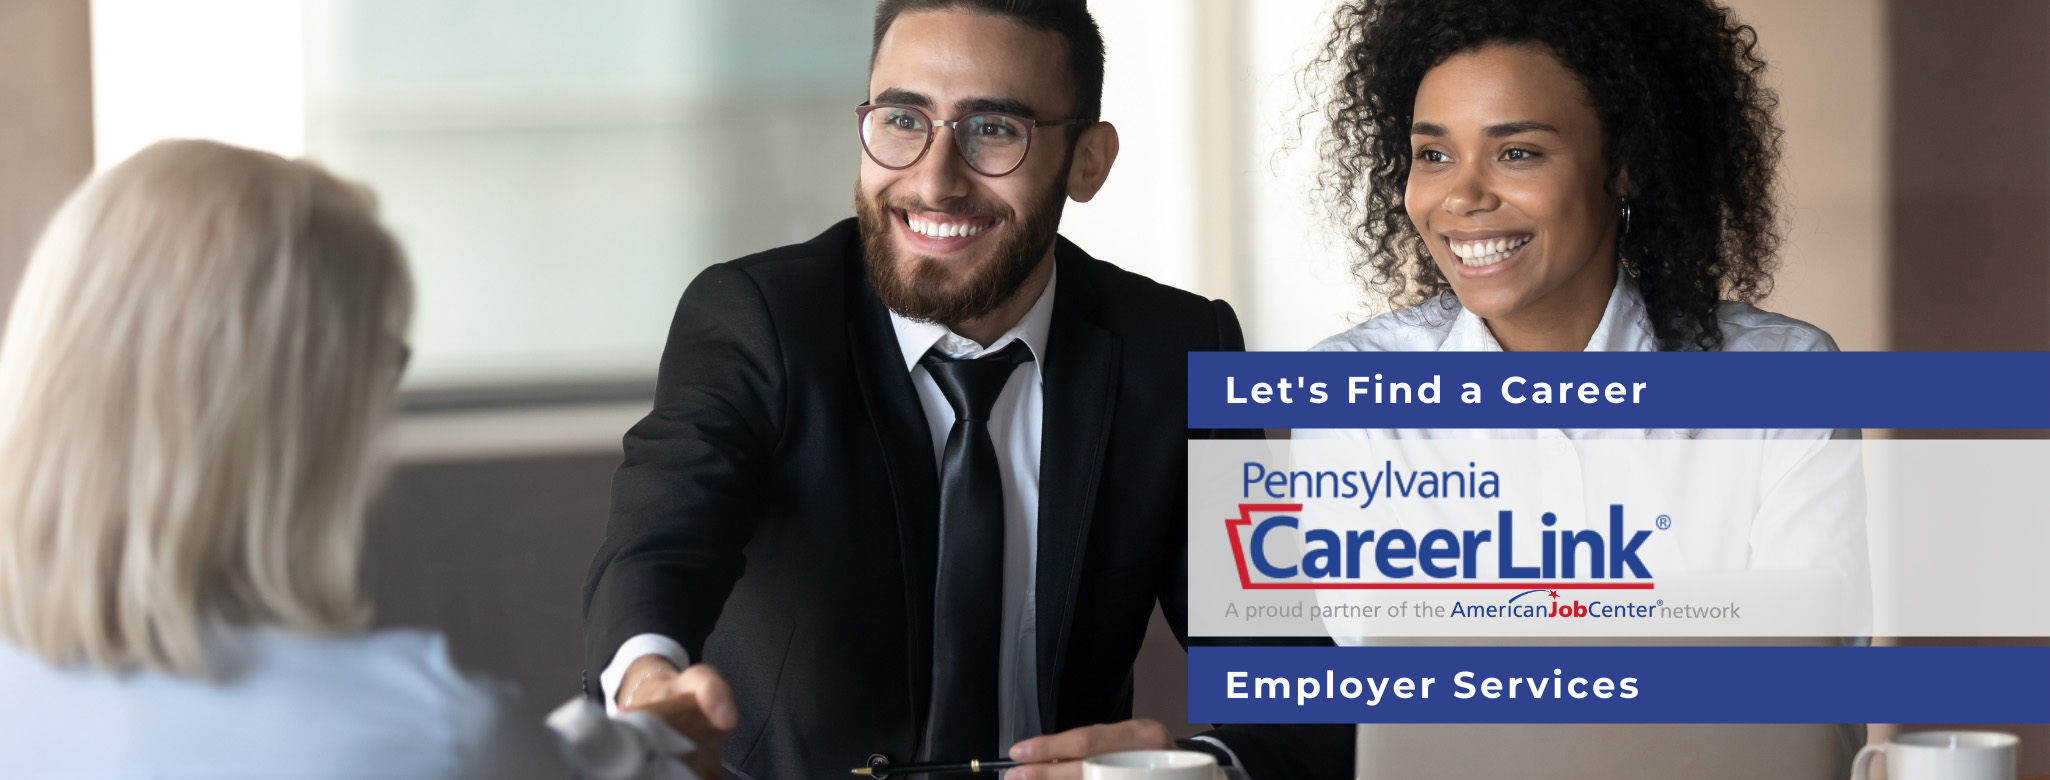 PA Career Link Employer Services